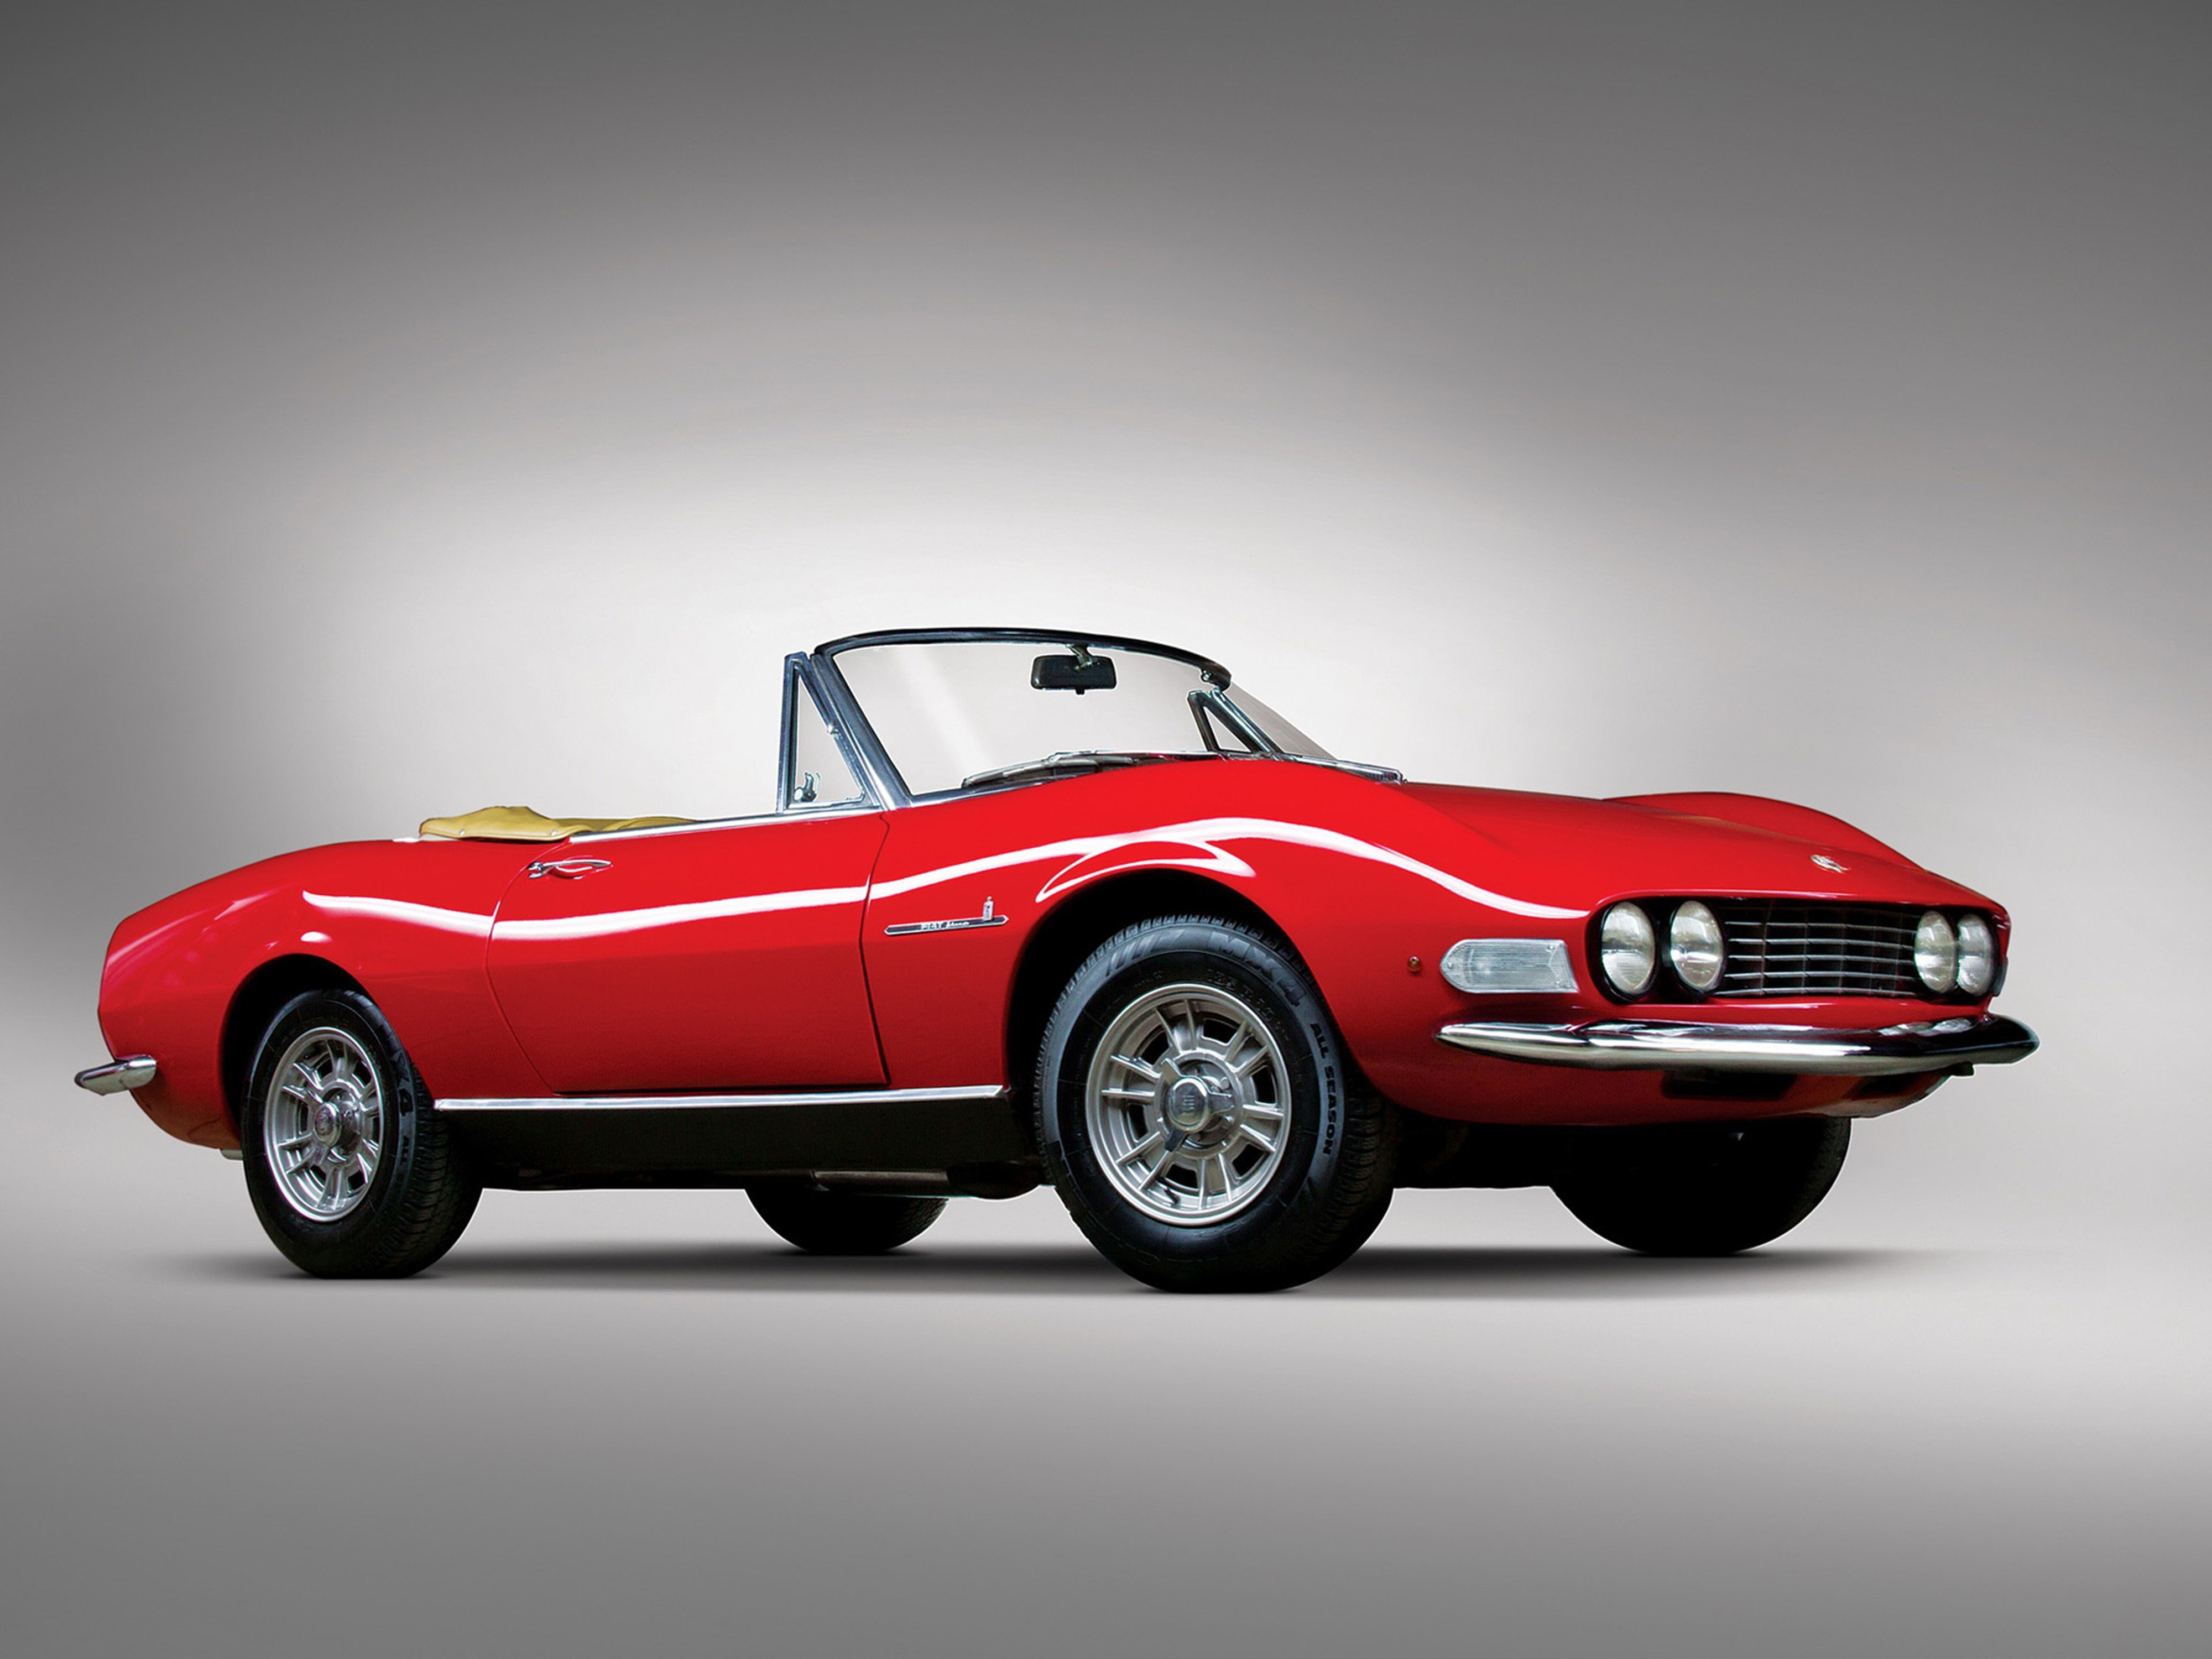 1966 fiat dino spider car sport classic 4000x3000 wallpaper 4000x3000 354281 wallpaperup. Black Bedroom Furniture Sets. Home Design Ideas